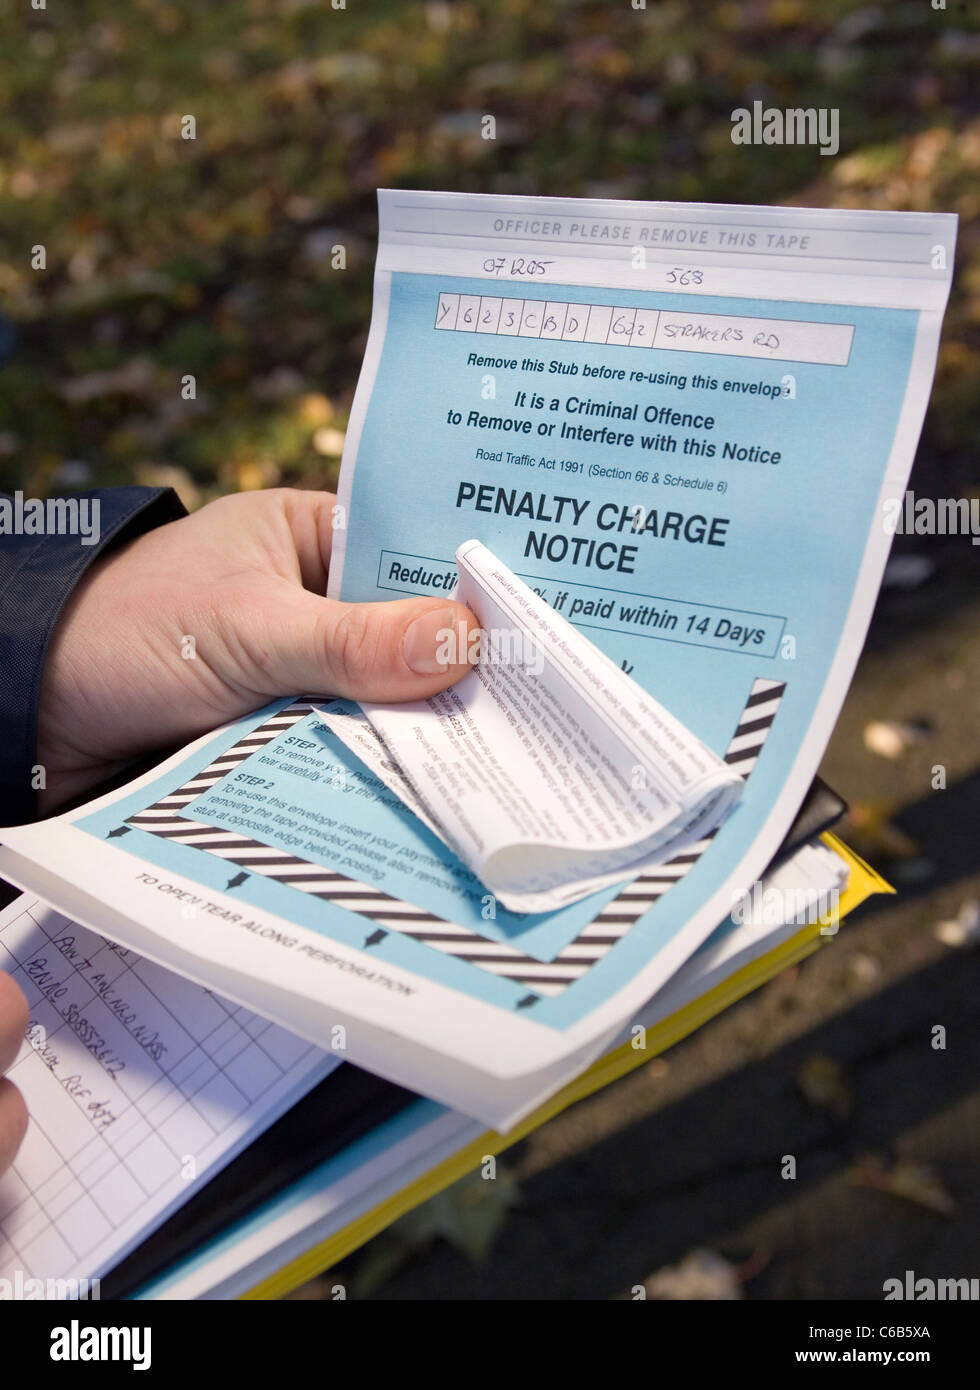 A penalty notice charge (Parking ticket) being issued to a car. London. UK - Stock Image